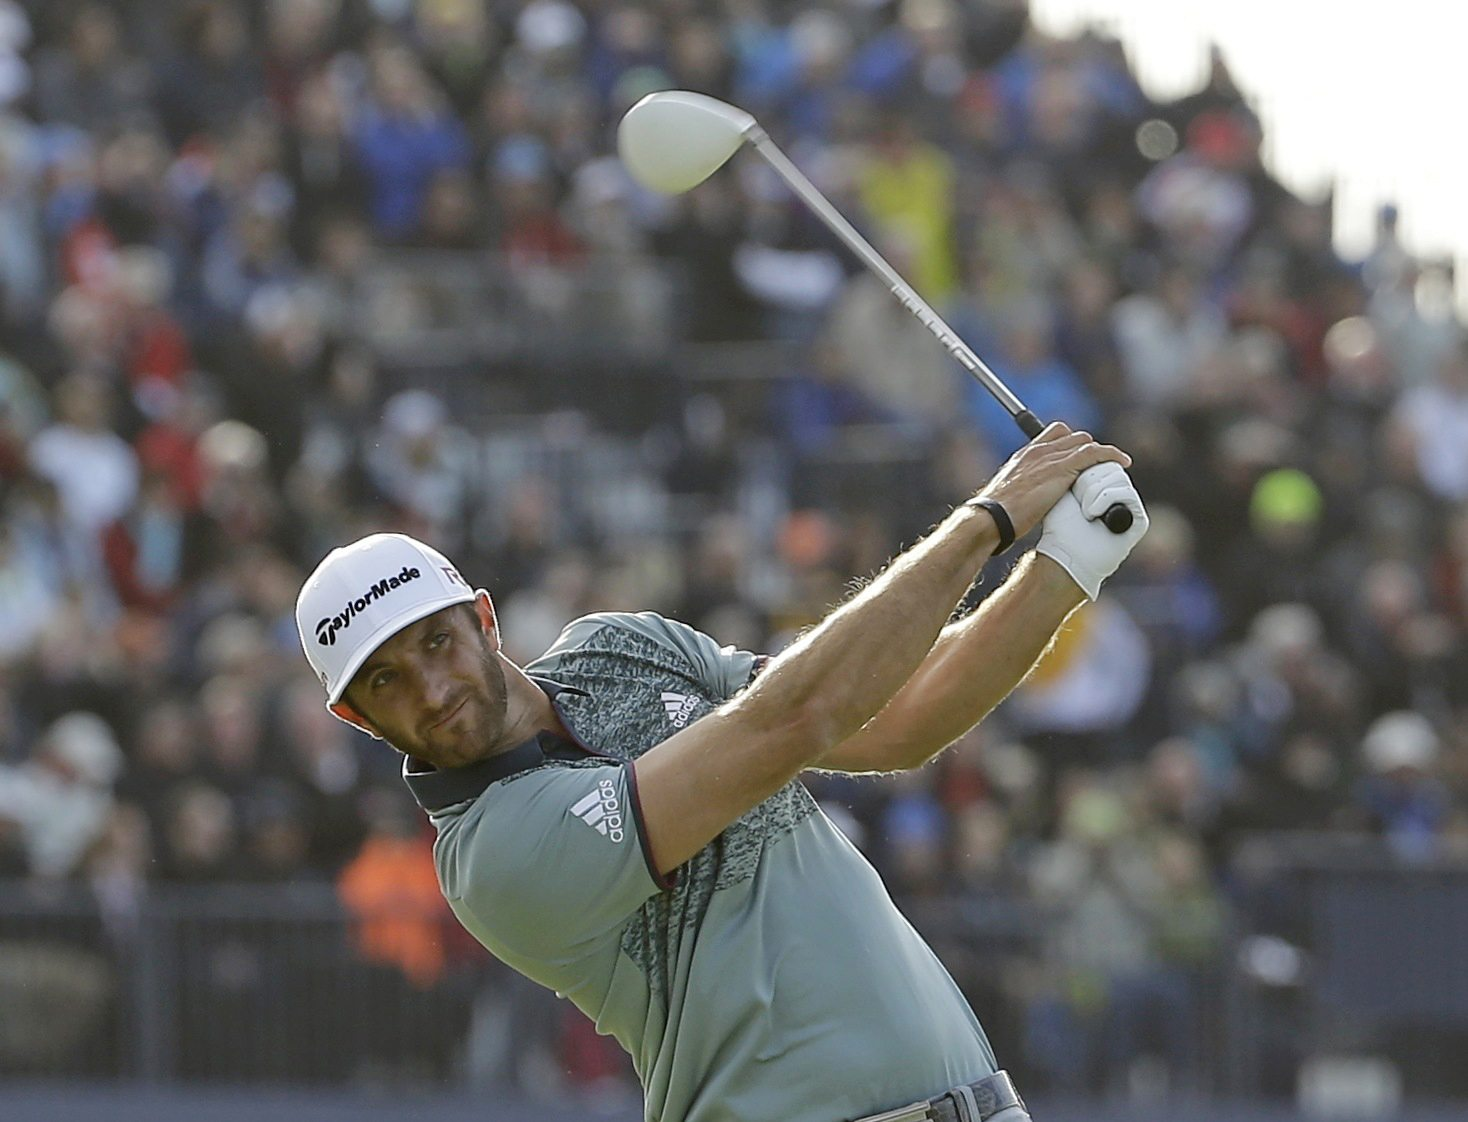 Dustin Johnson drives a ball  from the 18th tee during the second round of the British Open at the Old Course, St. Andrews, Scotland on Saturday. (AP Photo/David J. Phillip)